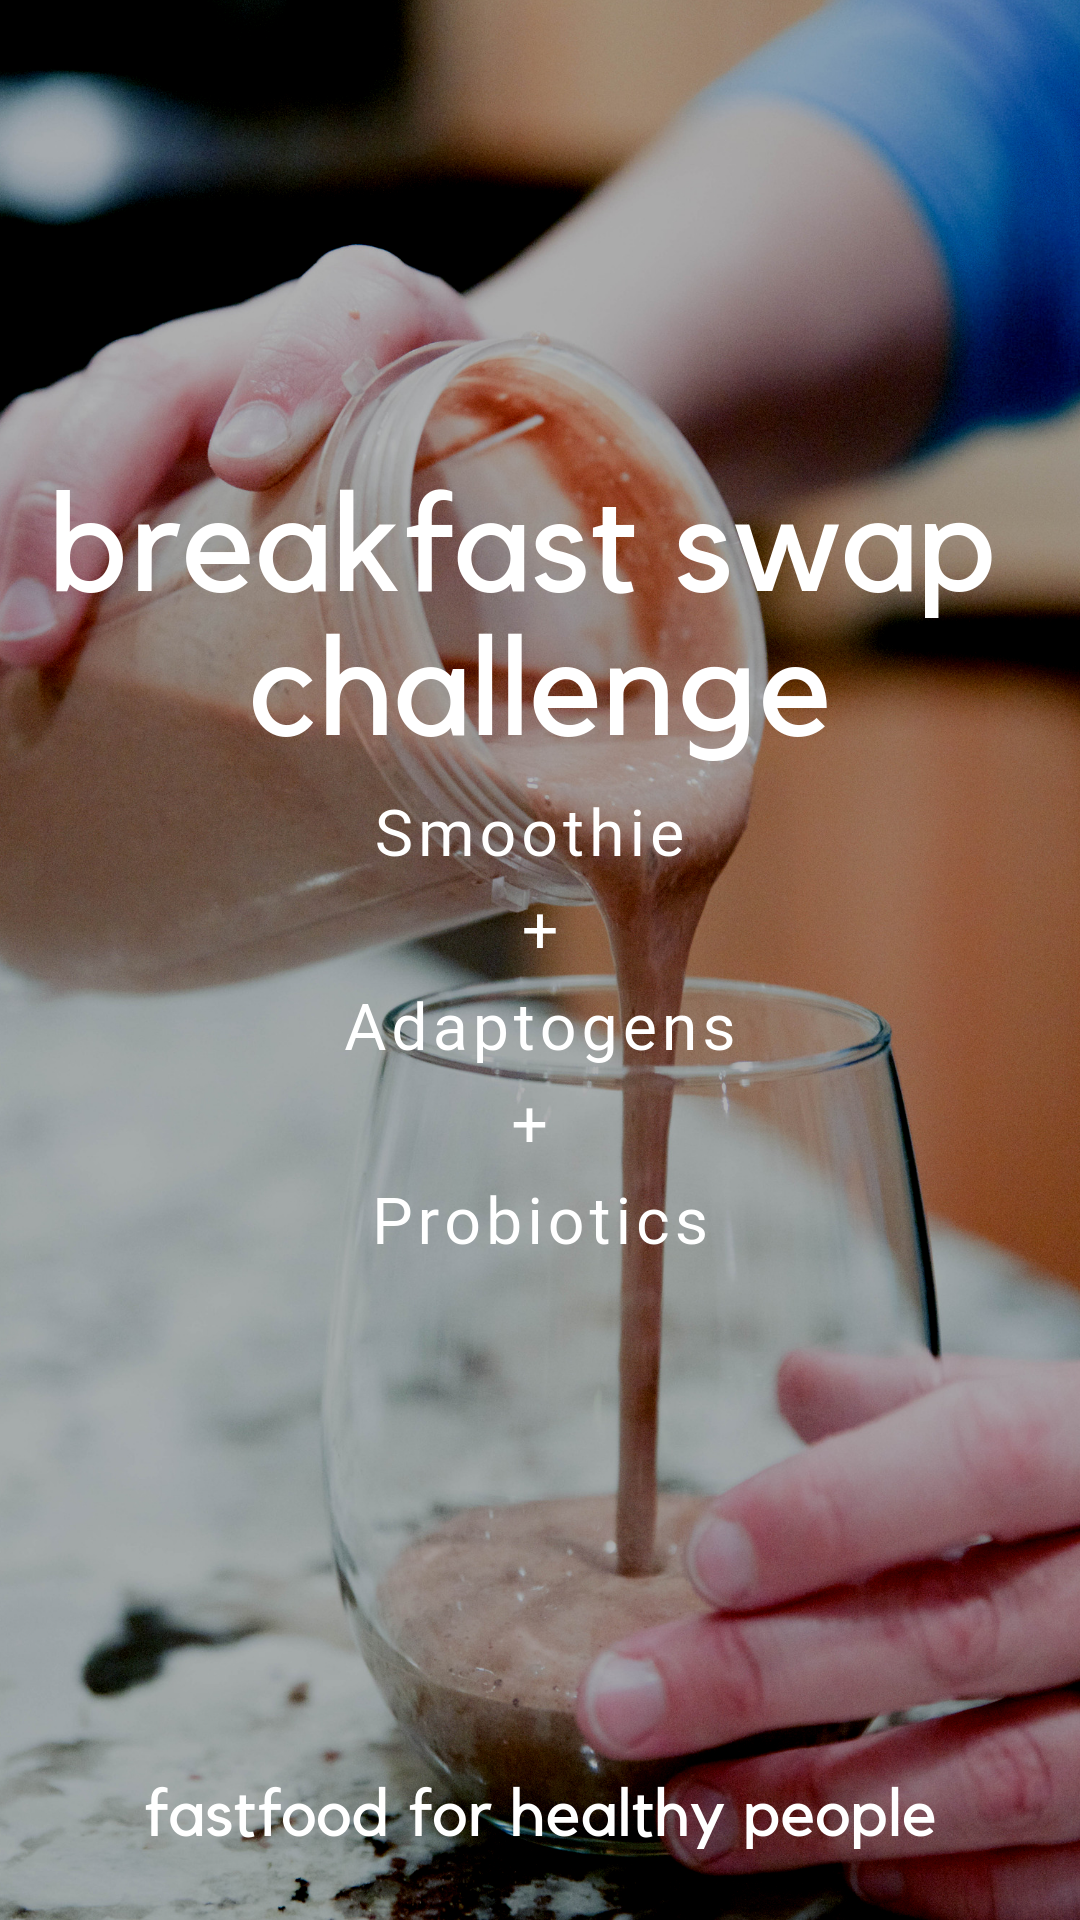 breakfast swap challenge.png